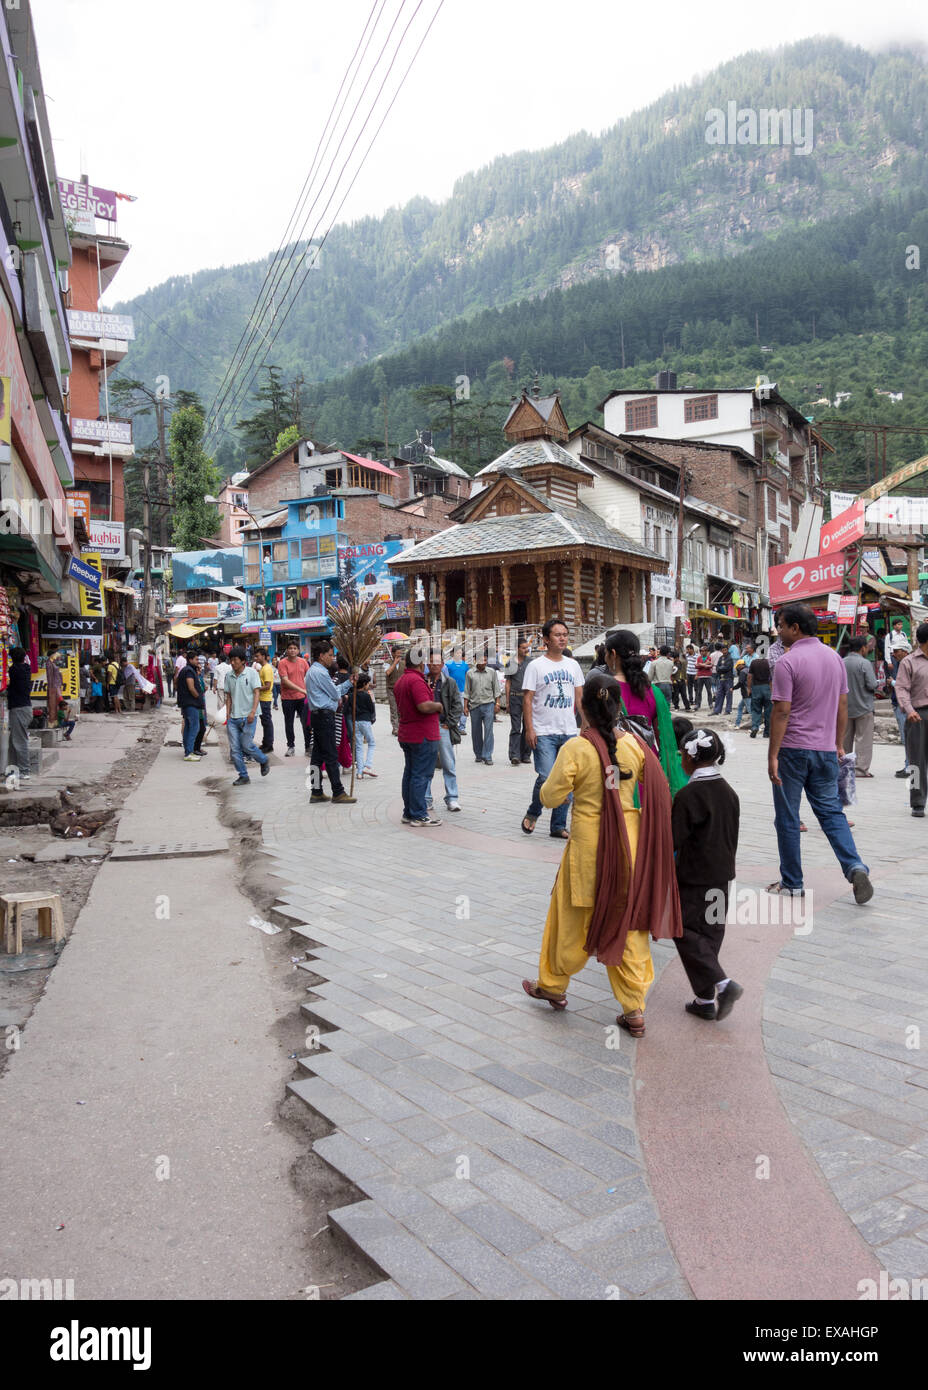 Street scene in the tourist town of Manali, Himachal Pradesh, India - Stock Image